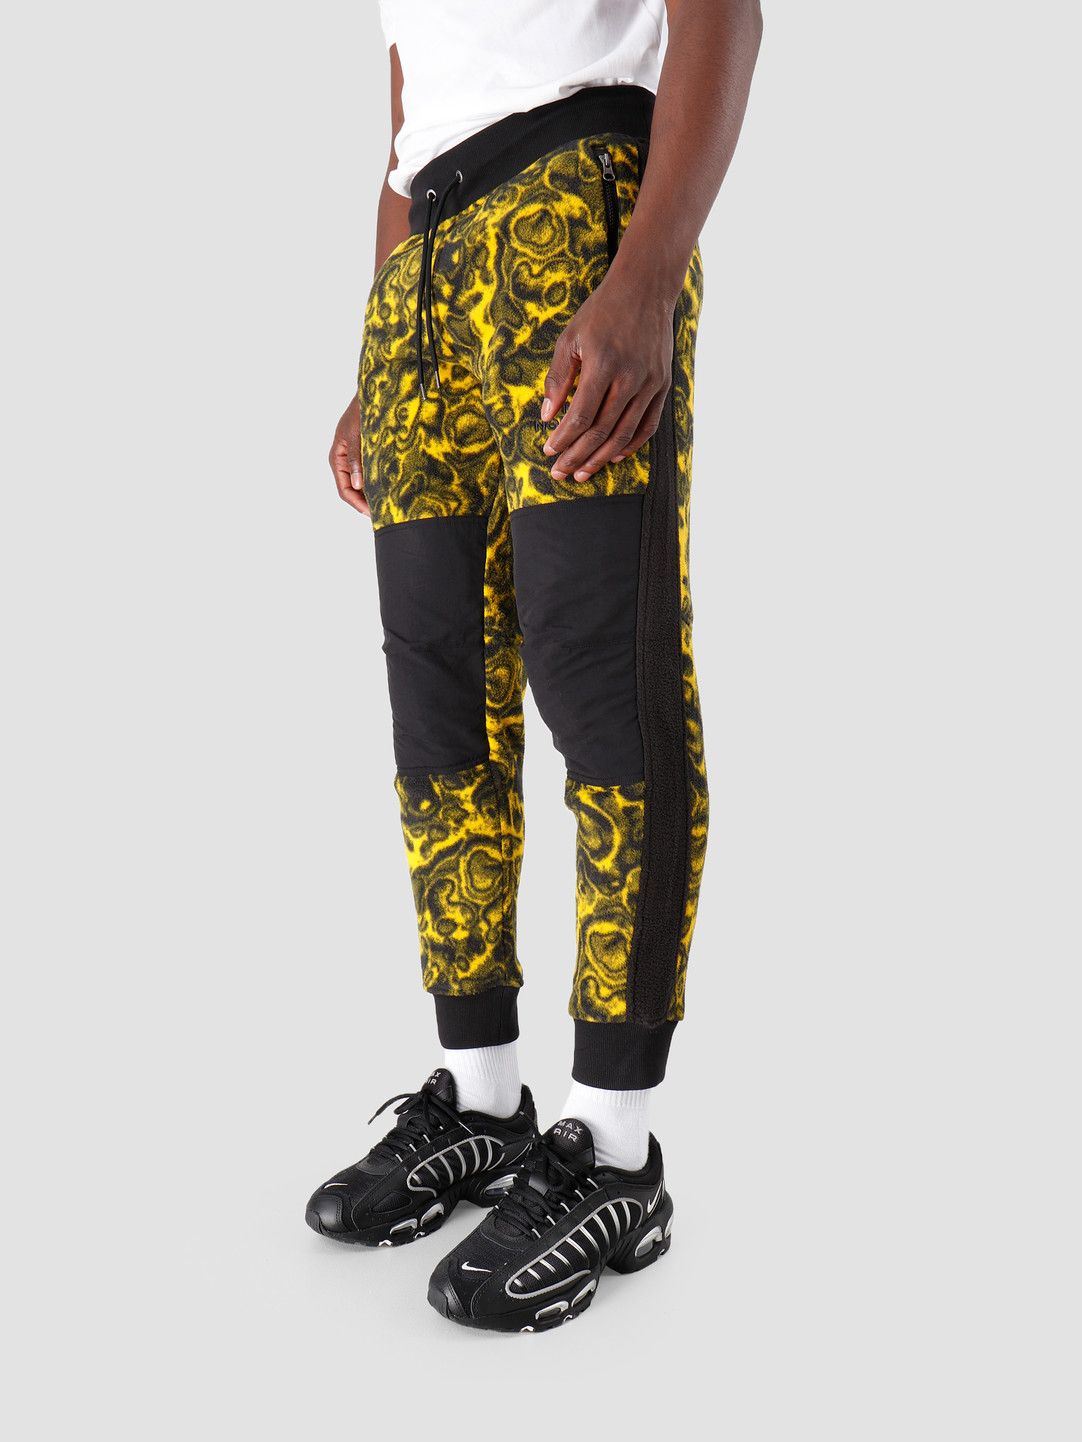 The North Face The North Face 94 Rage Classic Fleece Pant Leopard Yellow 1994 Rage T93XATF31